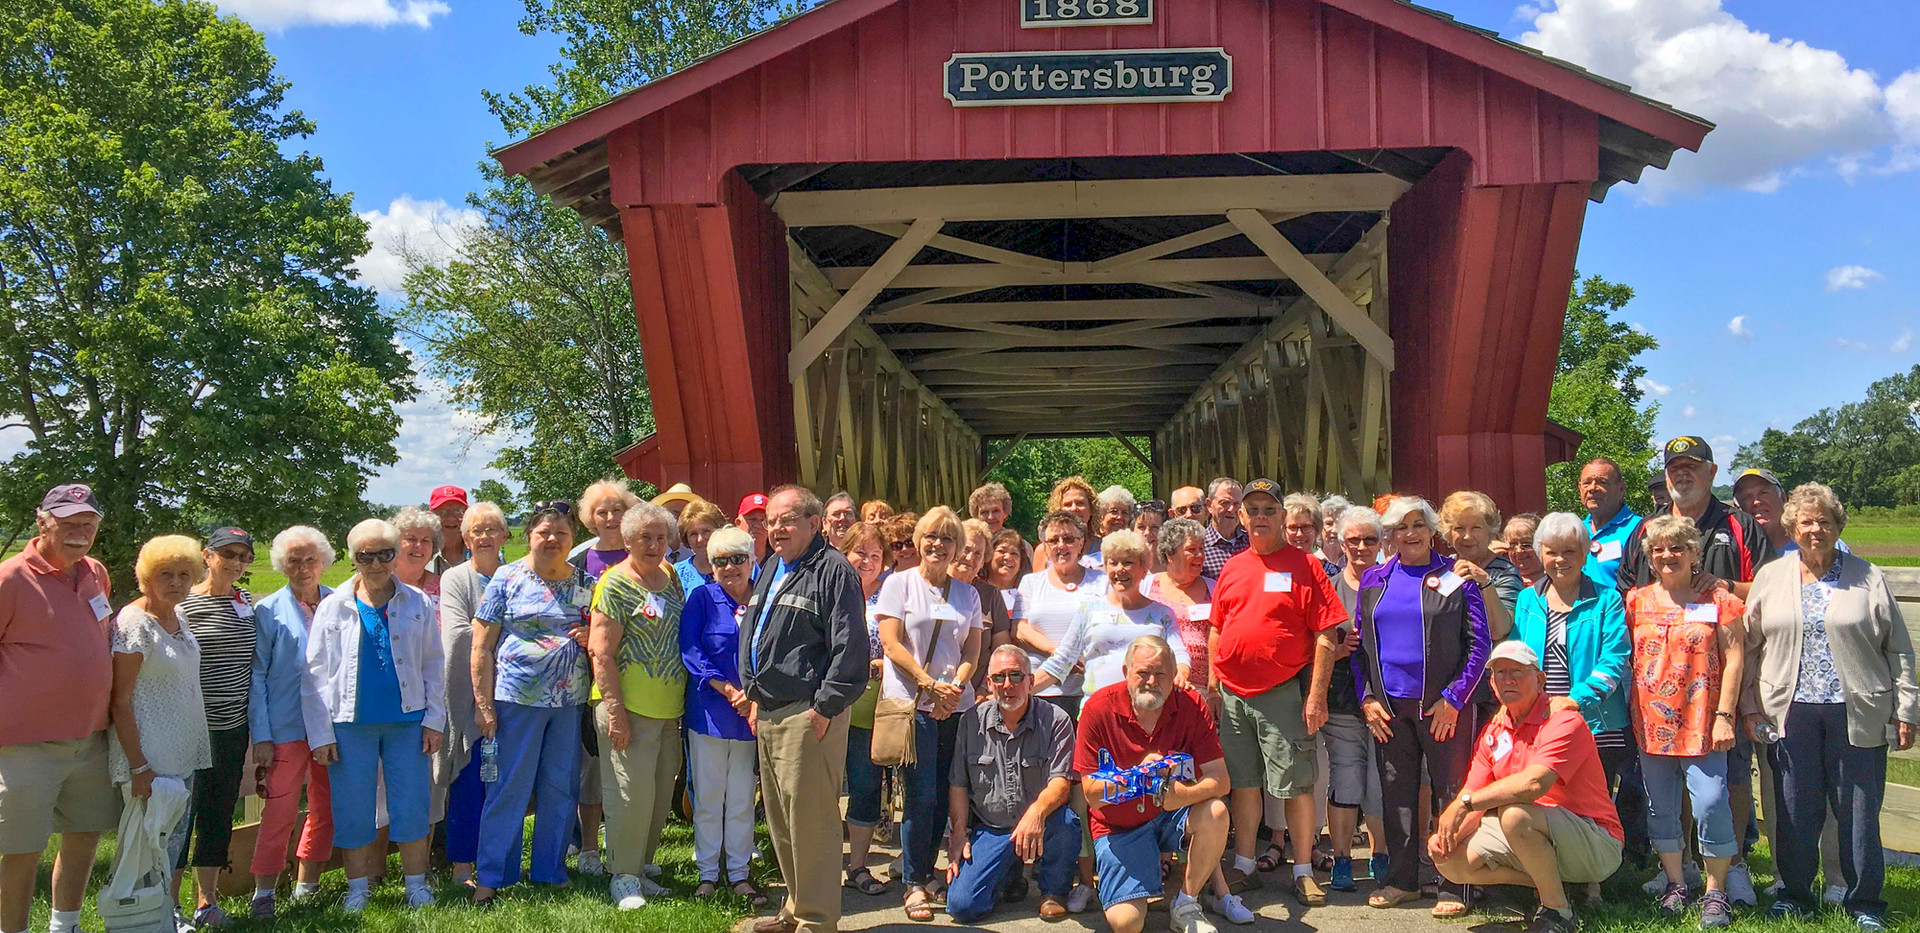 Dine on a covered bridge